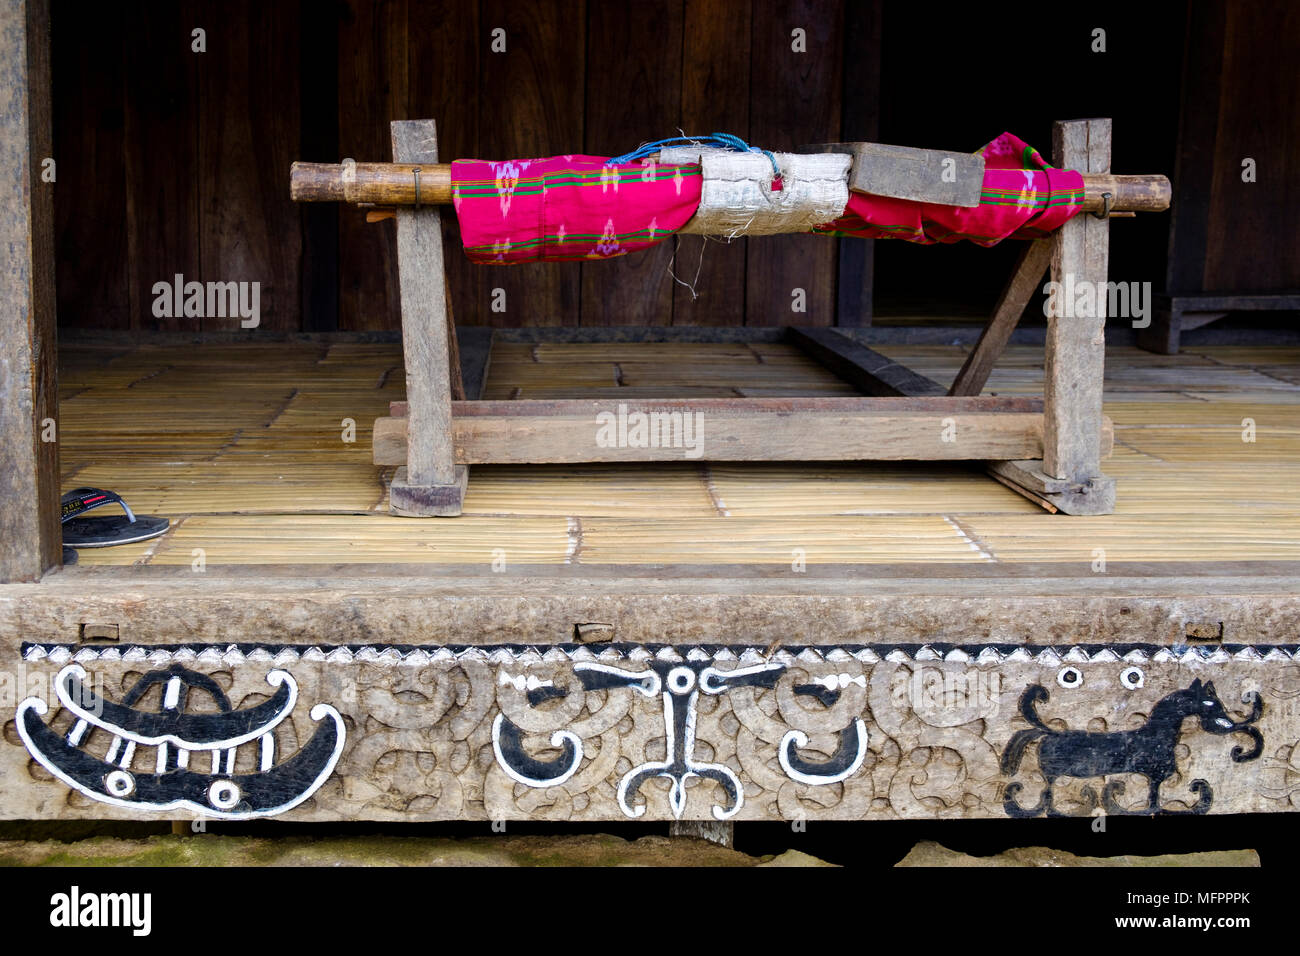 Loom and wood carved and painted decorations at entrance of traditional house, Luba, Ngada District, Island of Flores, Indonesia. - Stock Image